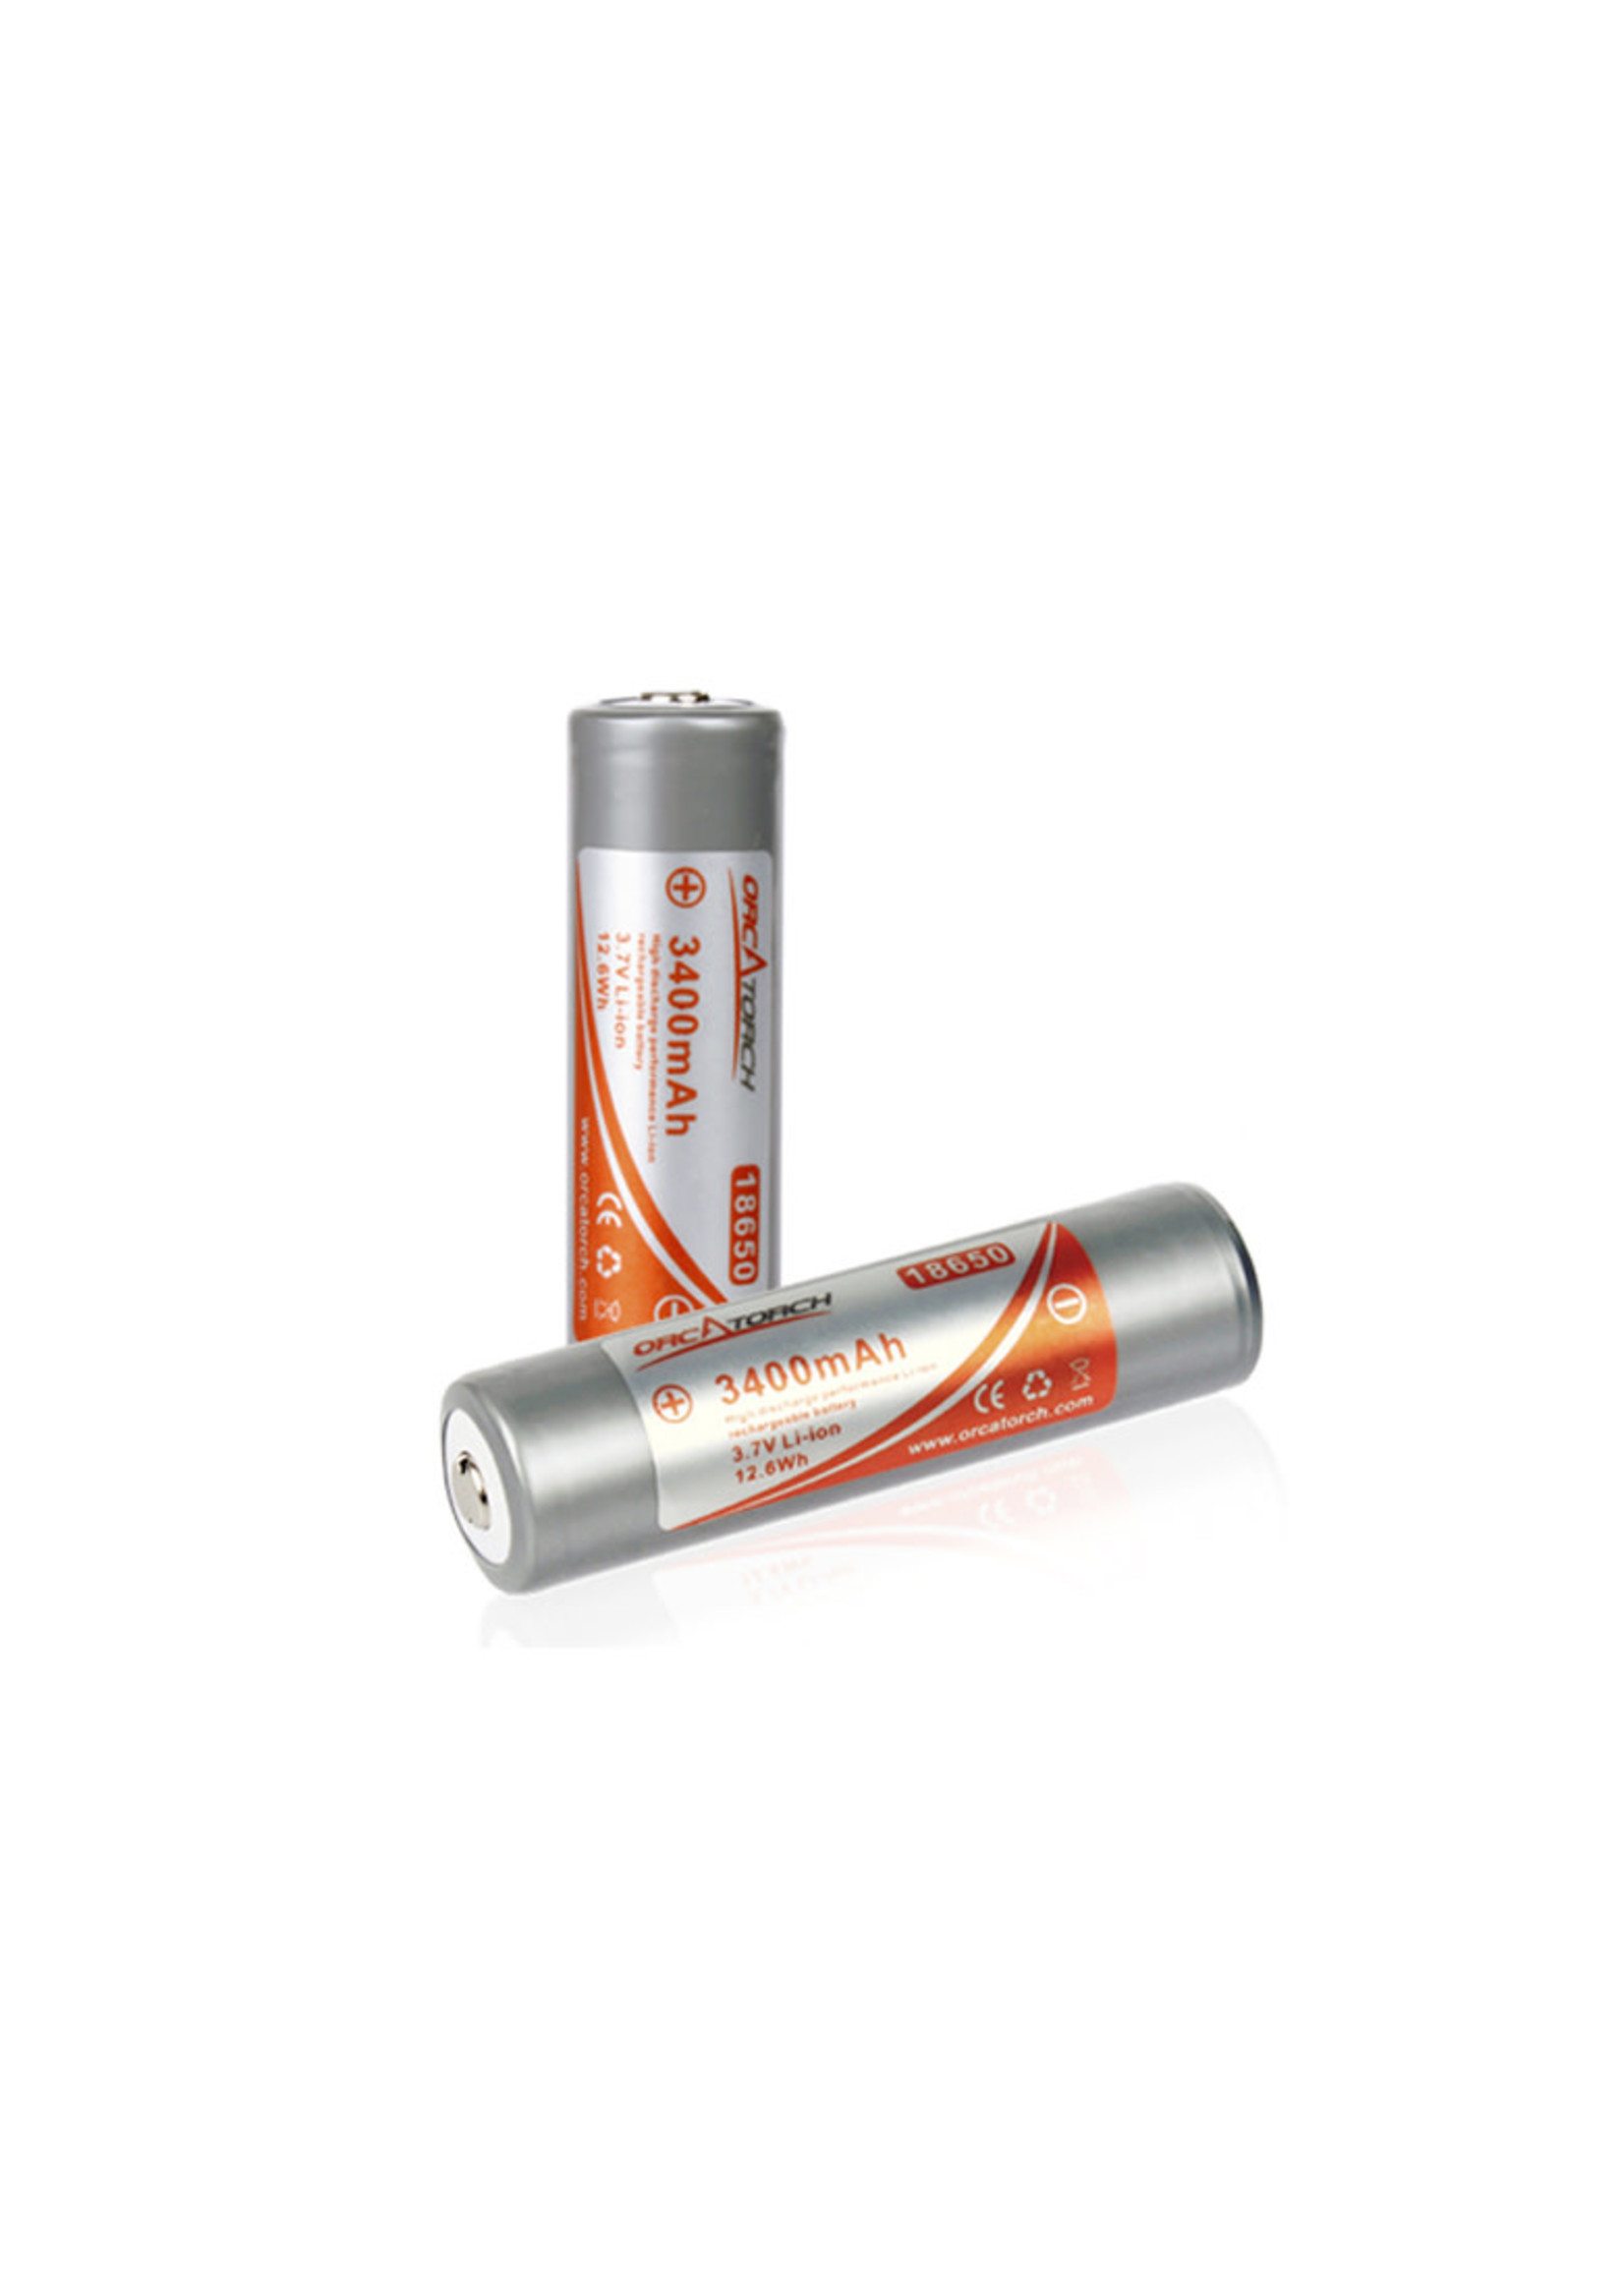 OrcaTorch OrcaTorch 18650 Rechargeable Battery